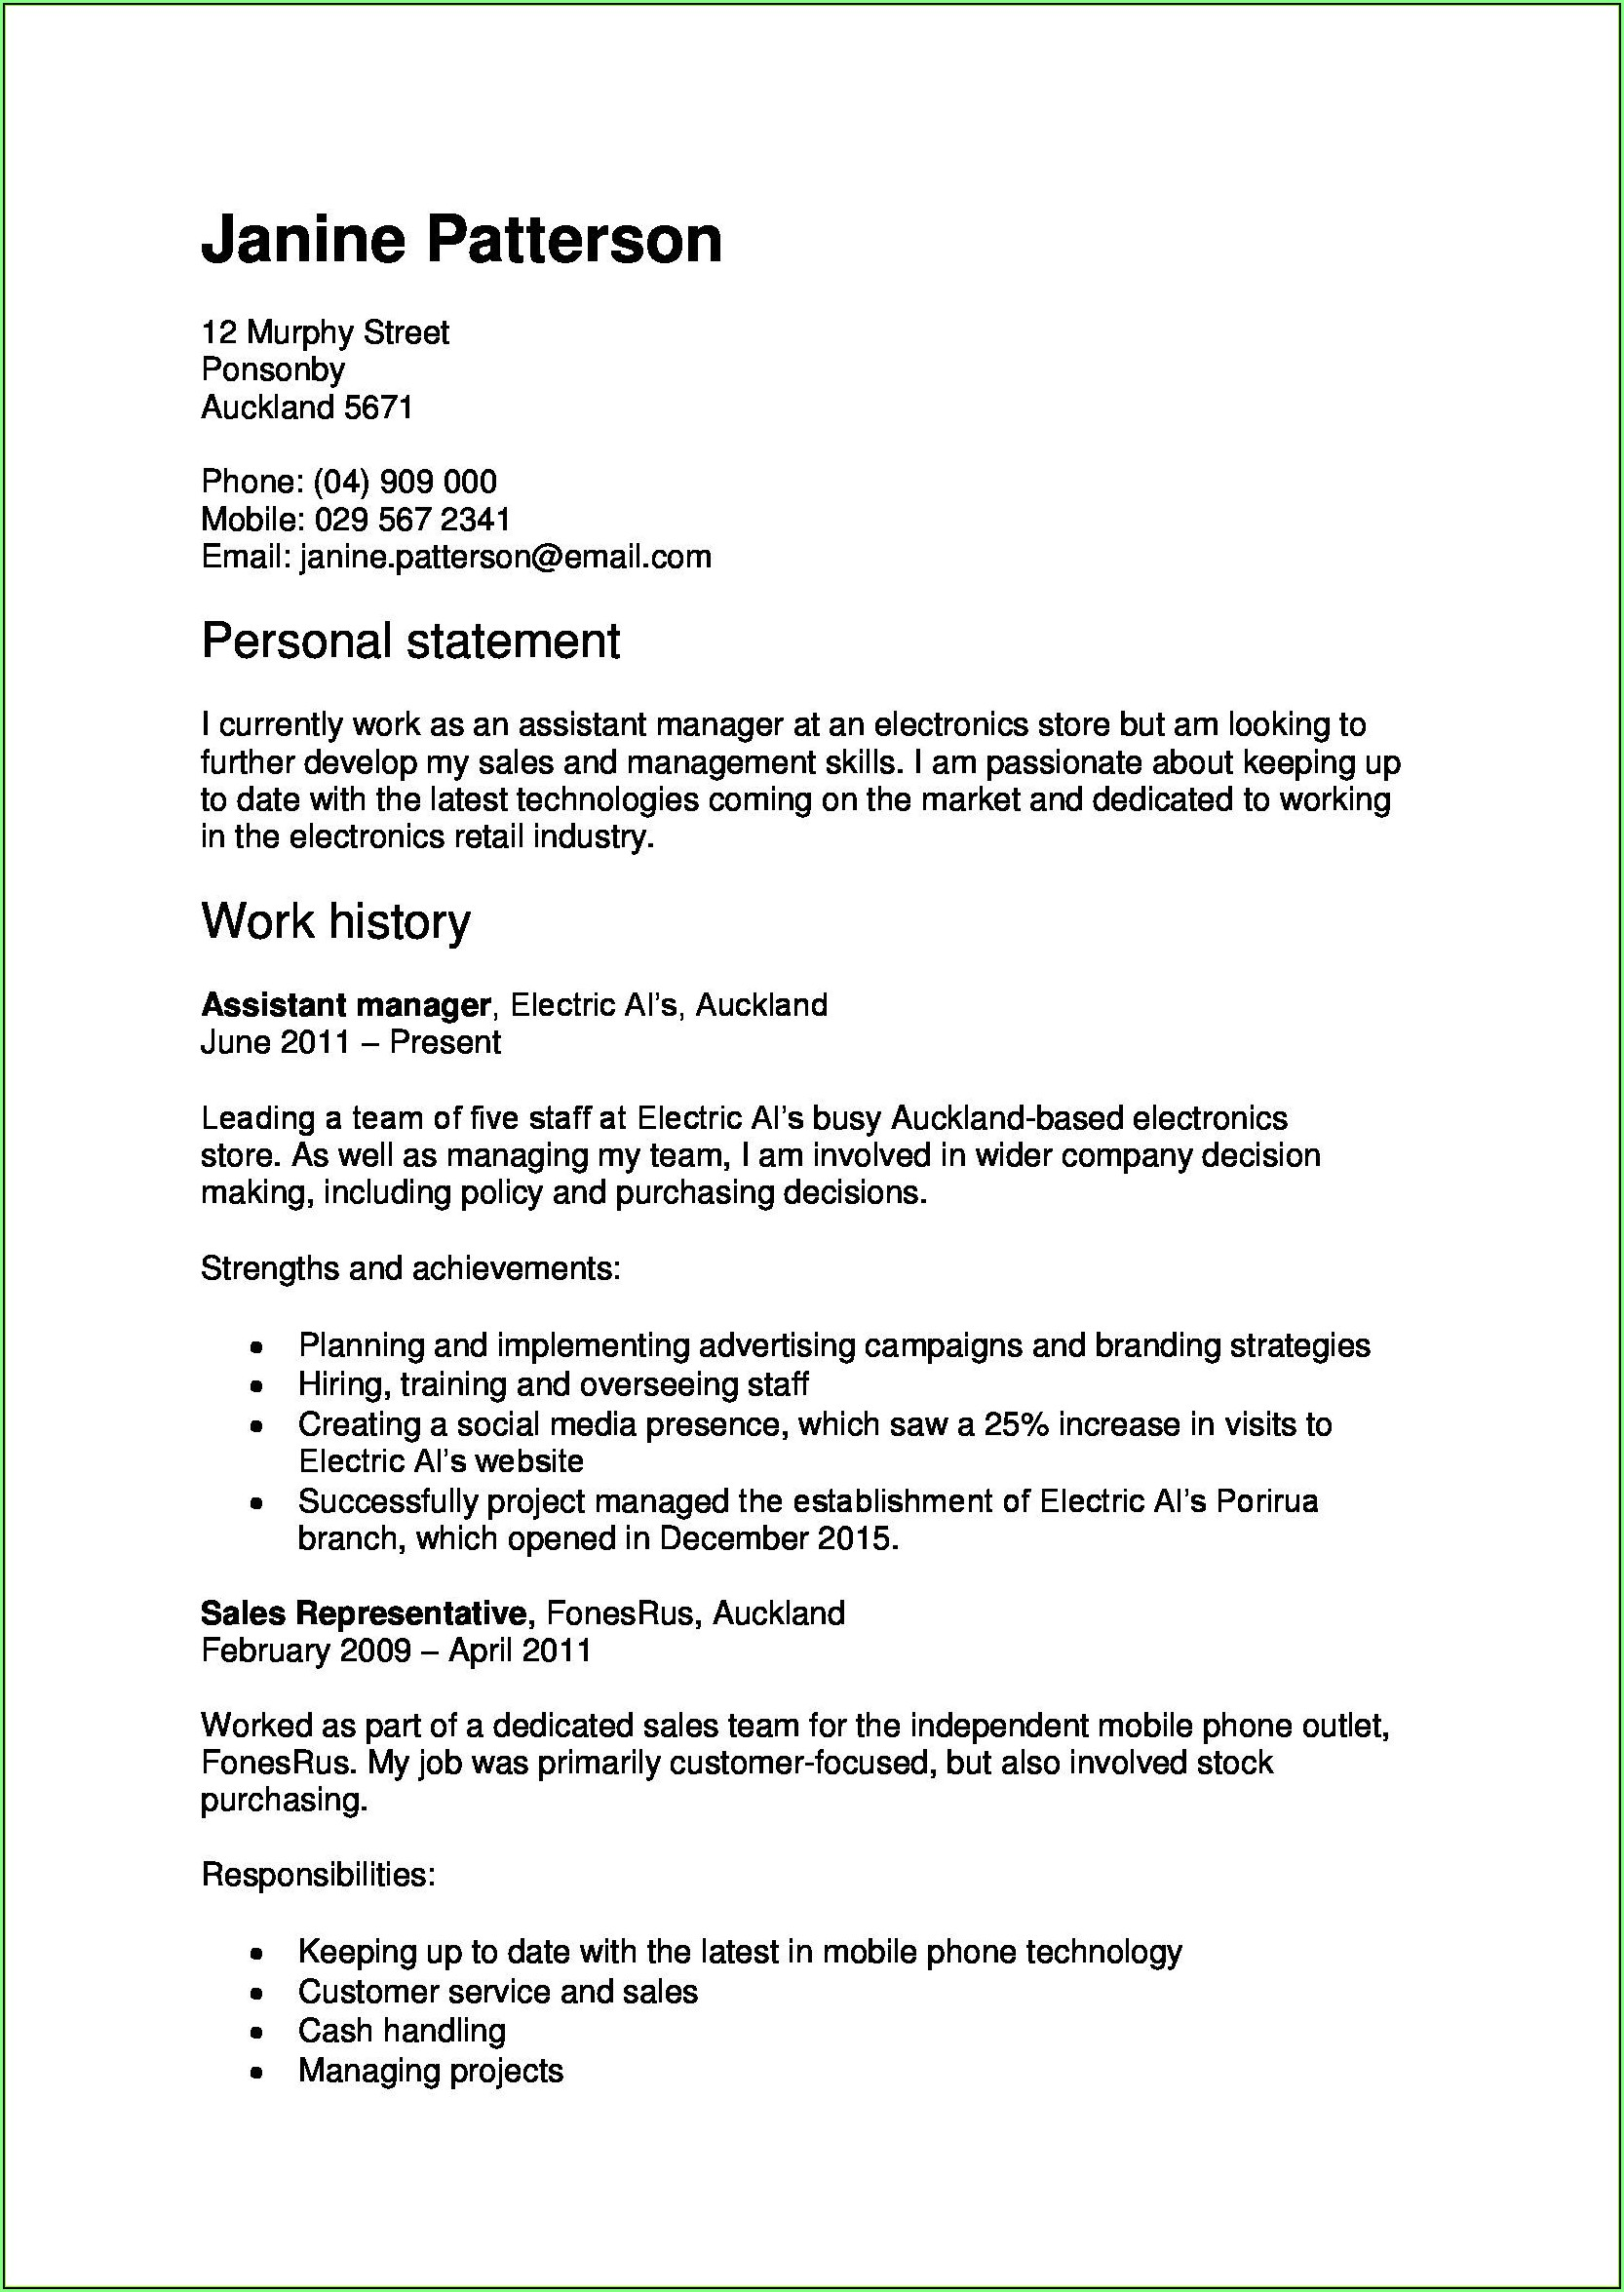 Free Resume Builder Sites Quora